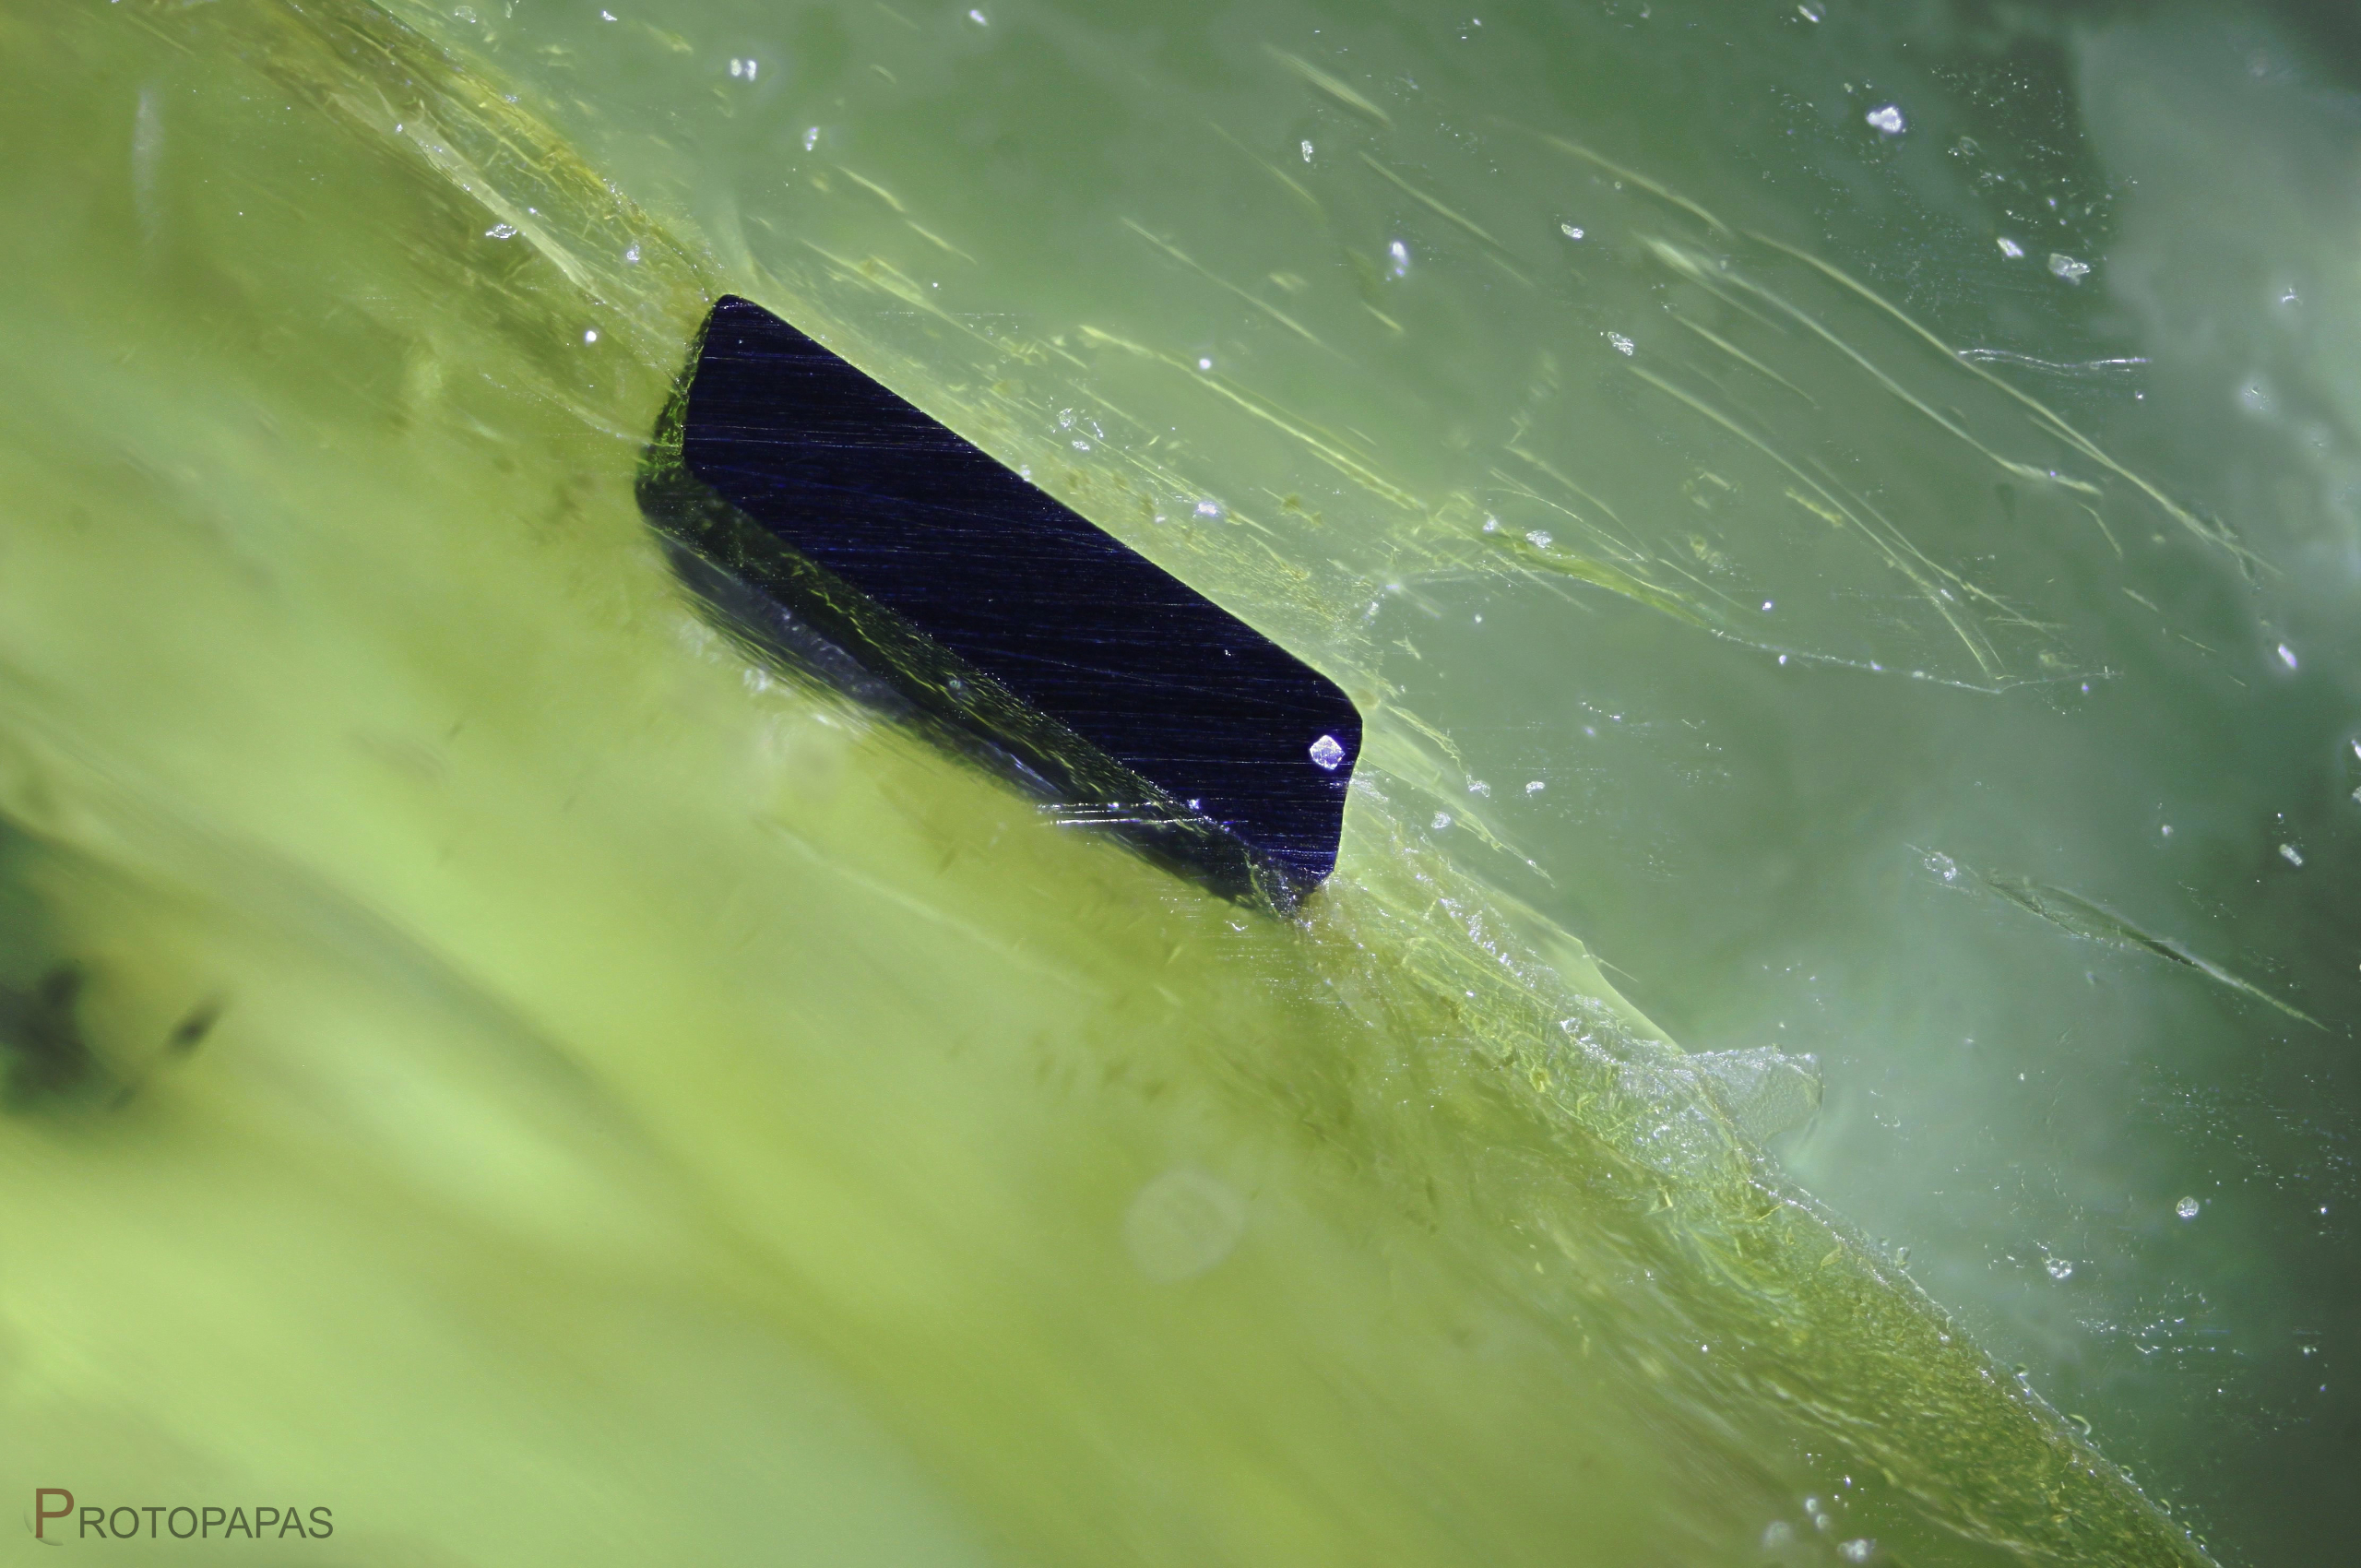 Sawed Chromite crystal on the surface of a Peridot